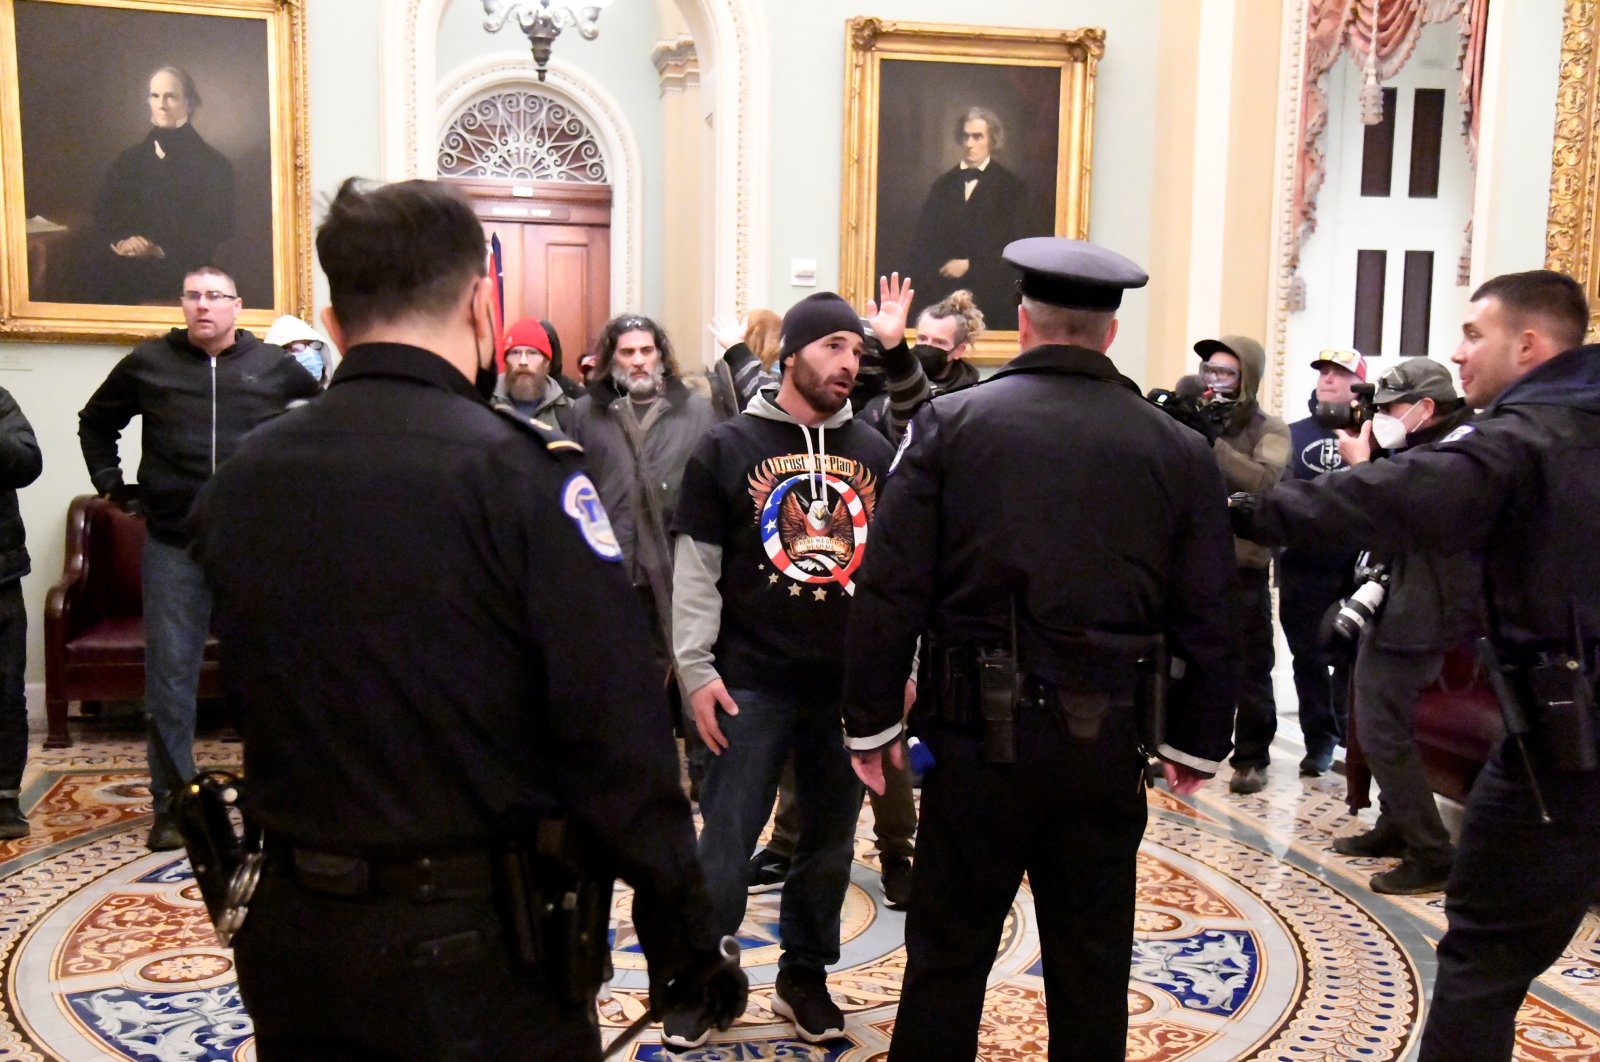 Police confront supporters of President Donald Trump as they demonstrate on the second floor of the U.S. Capitol near the entrance to the Senate after breaching security defenses, in Washington, U.S., Jan. 6, 2021. (REUTERS Photo)